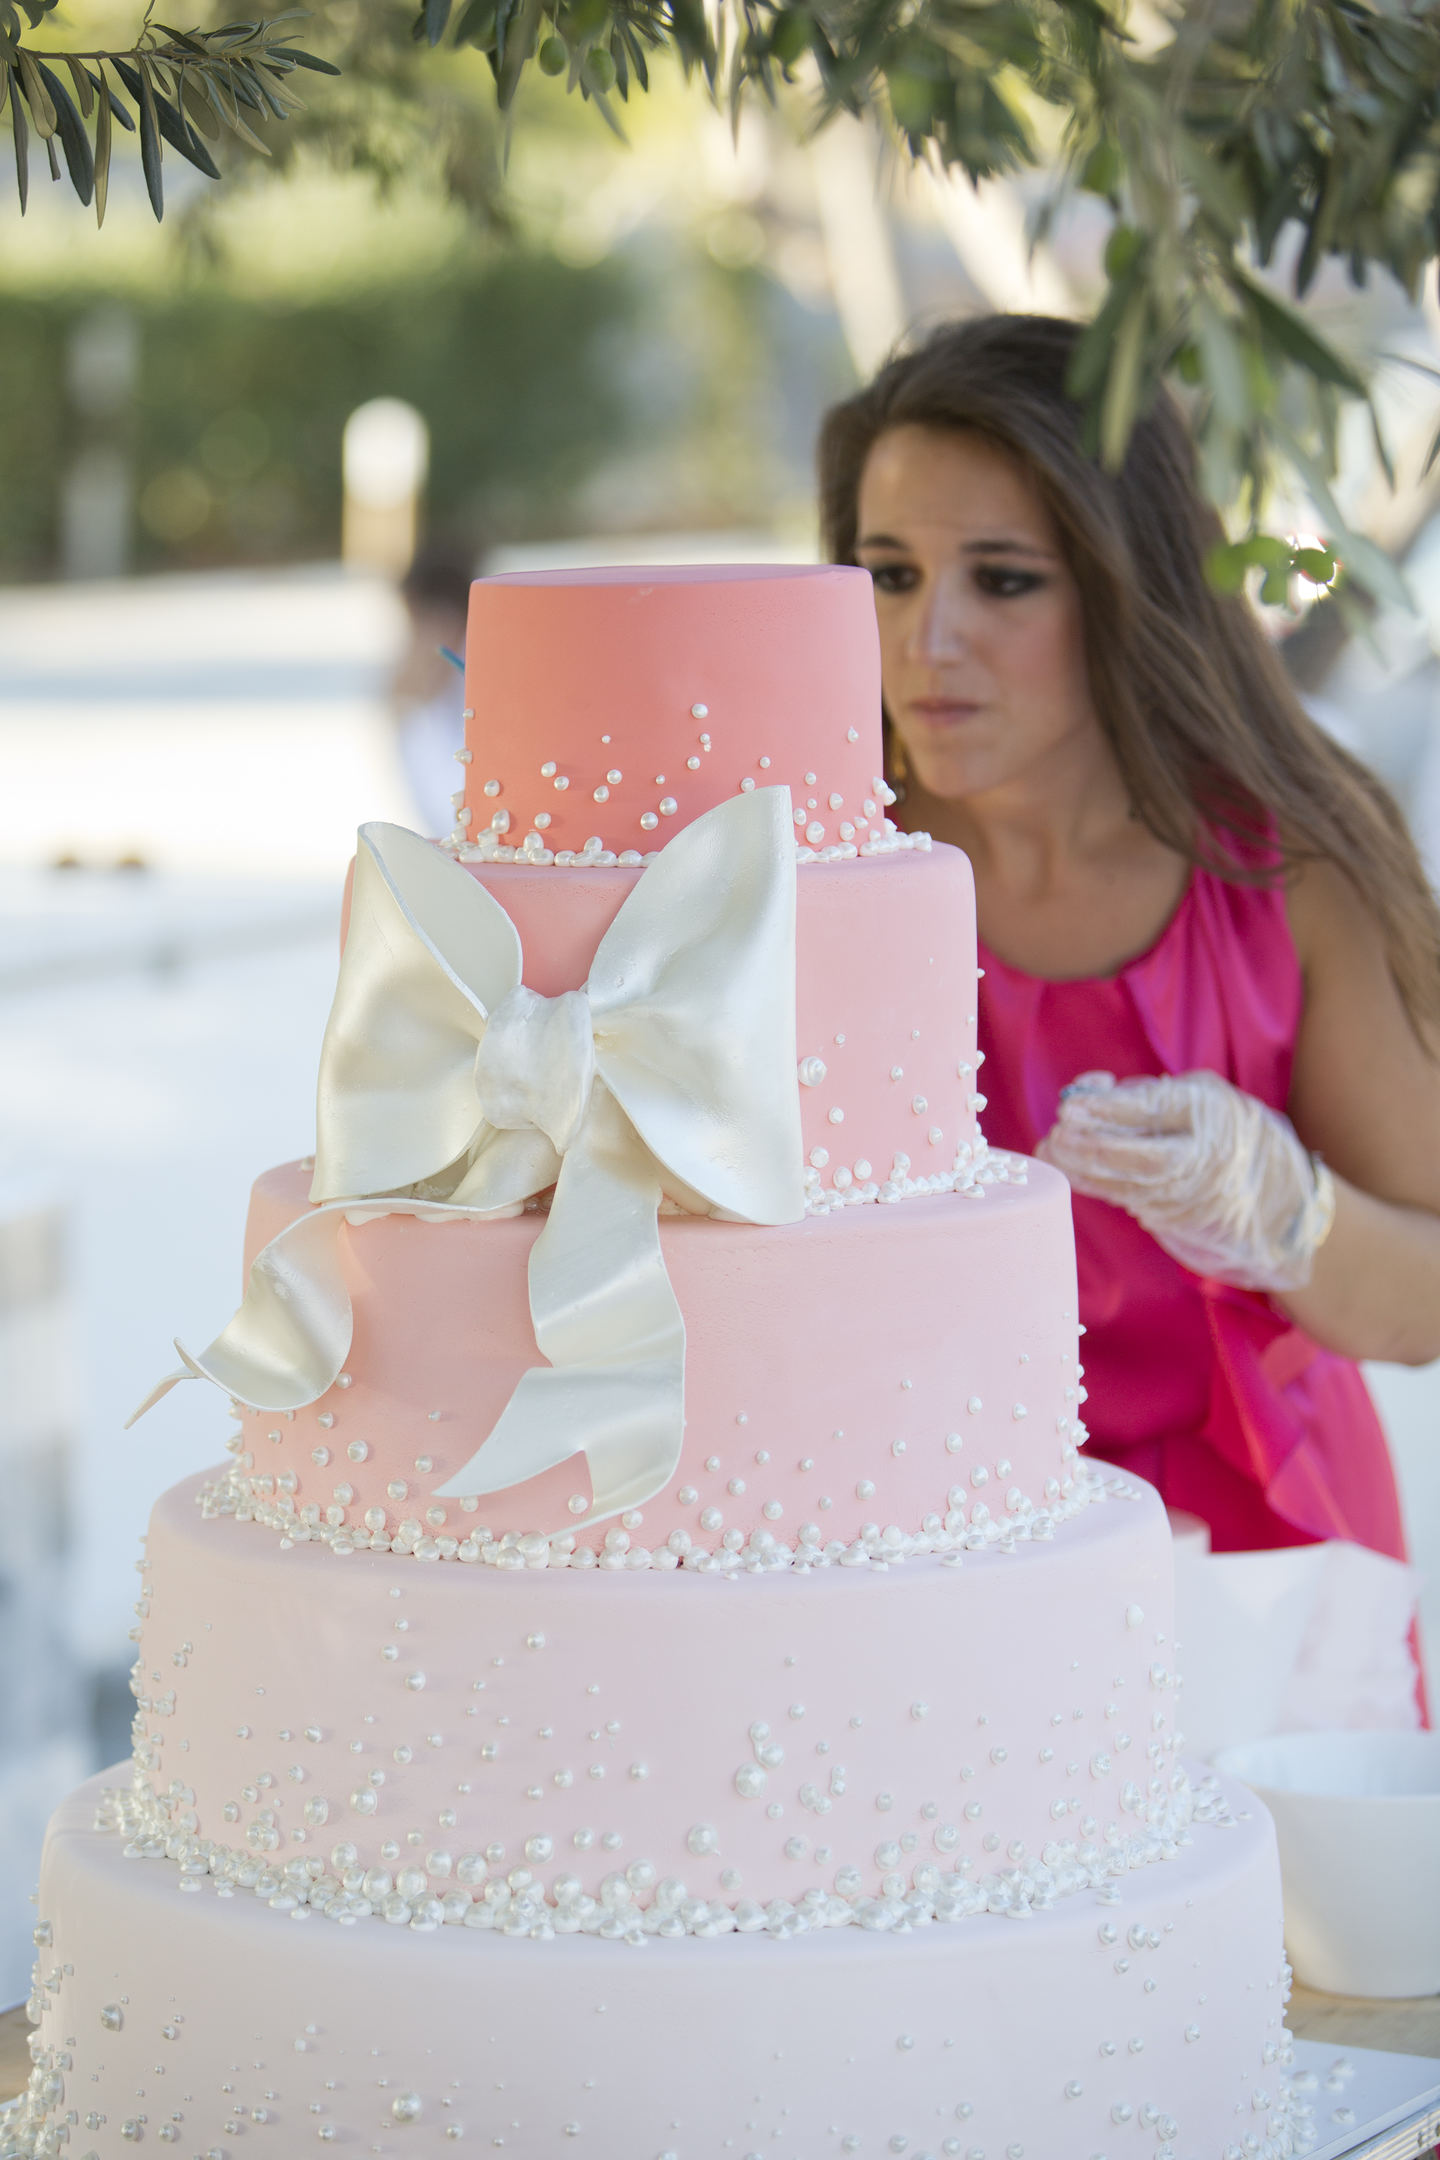 ZOE PUTTING THE LAST TOUCHES ON WEDDING CAKE (1)